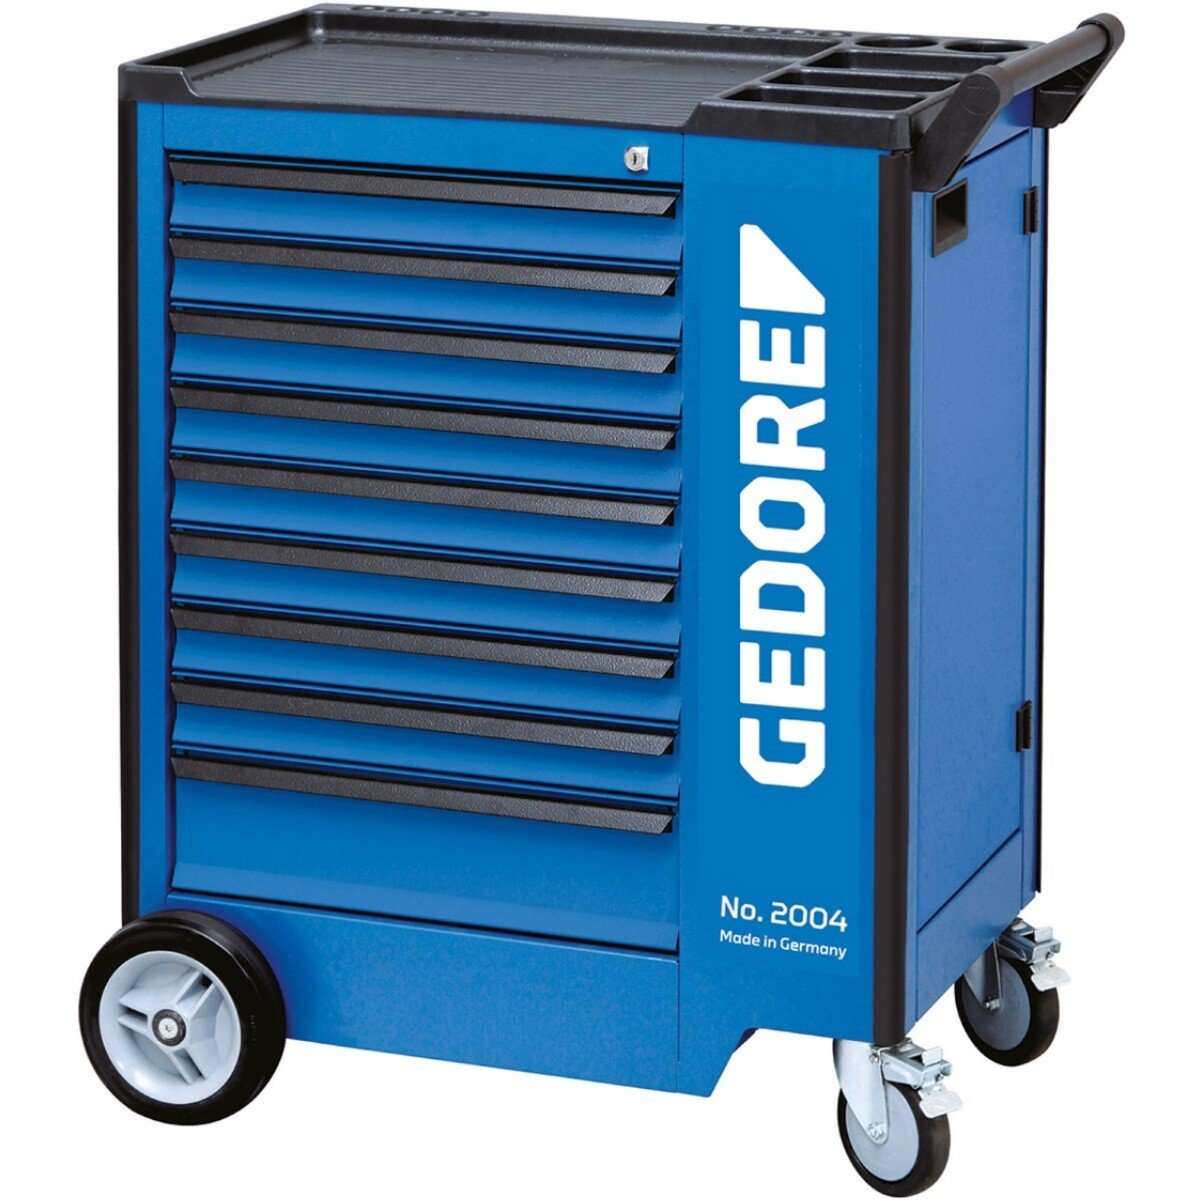 Gedore 1640704 Tool Trolley with 9 Drawers and Storage Compartment 2004 0810